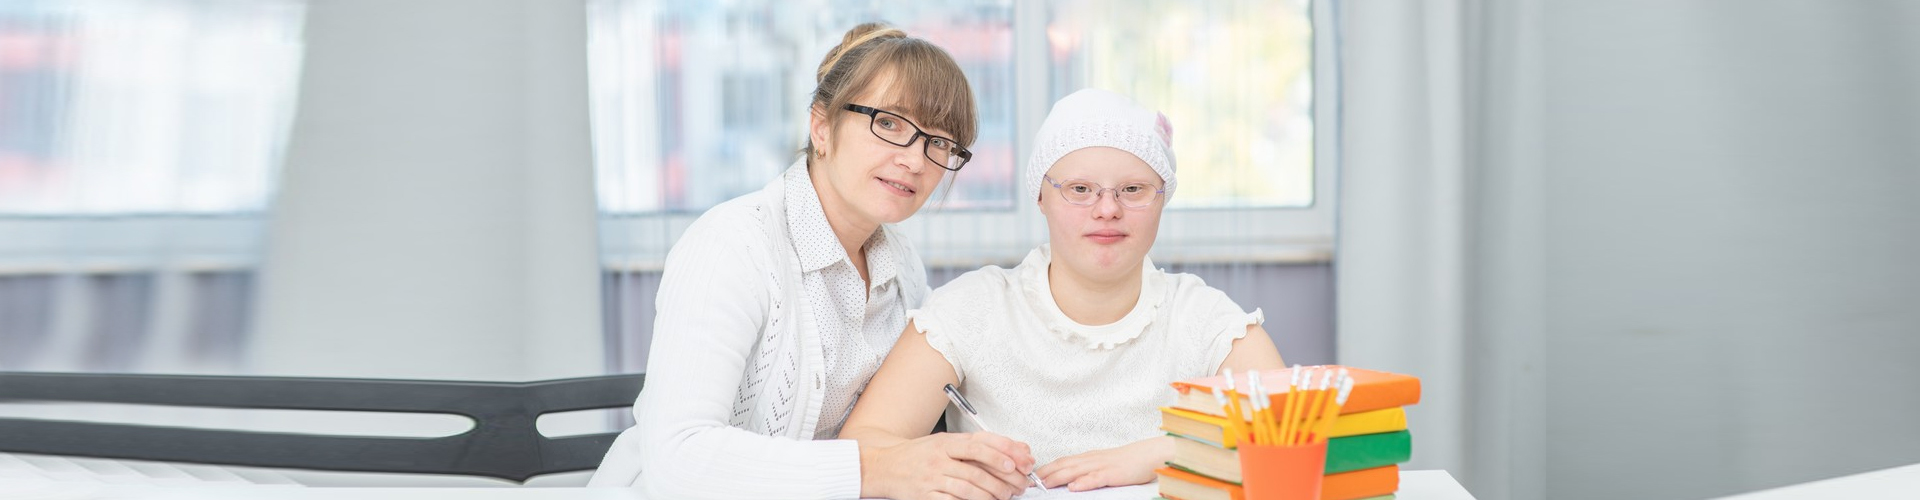 woman assisting young girl in writing